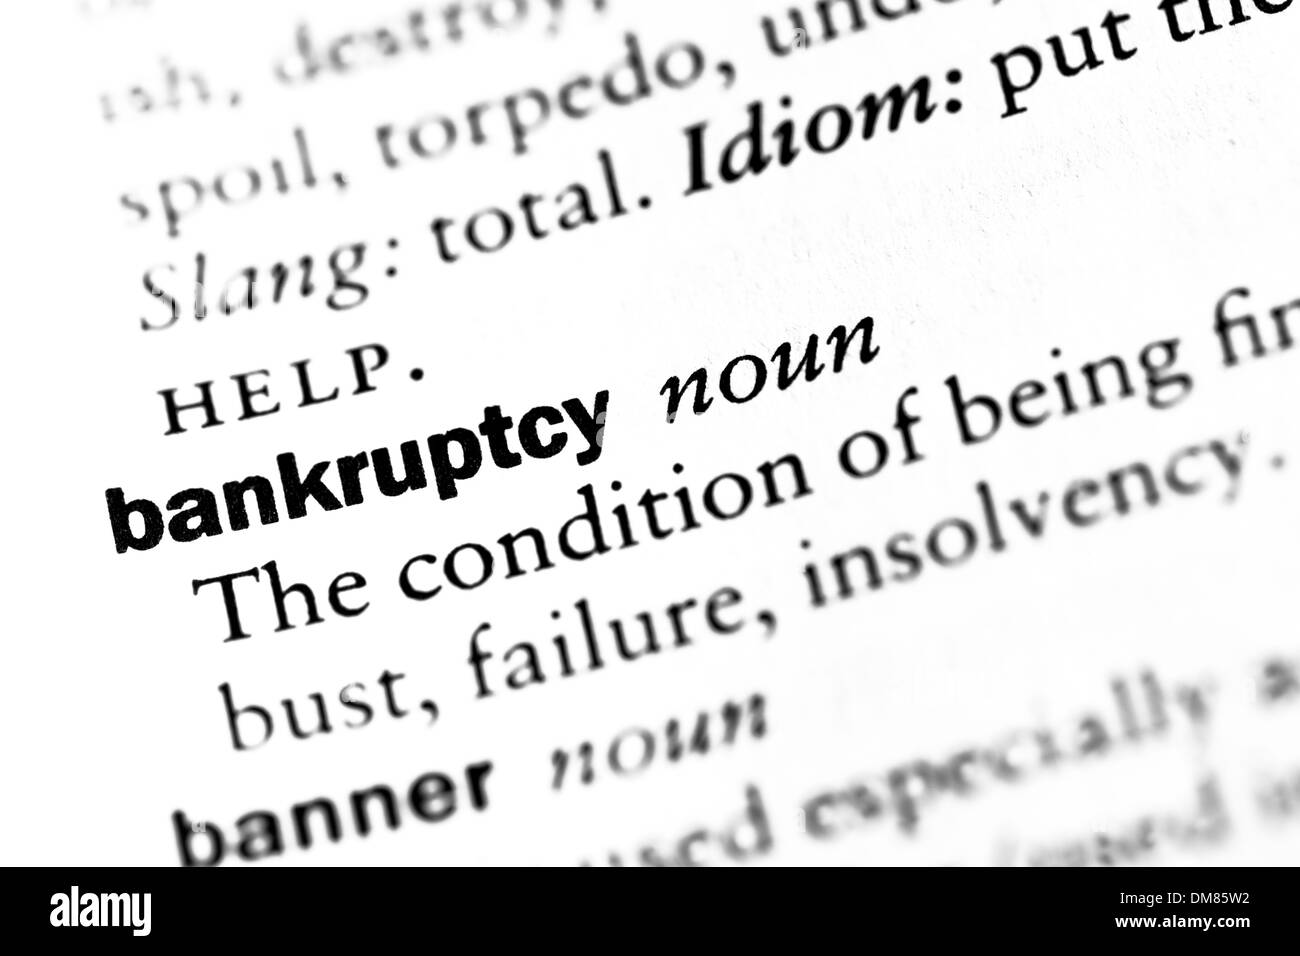 Dictionary definition of 'Bankruptcy' - Stock Image